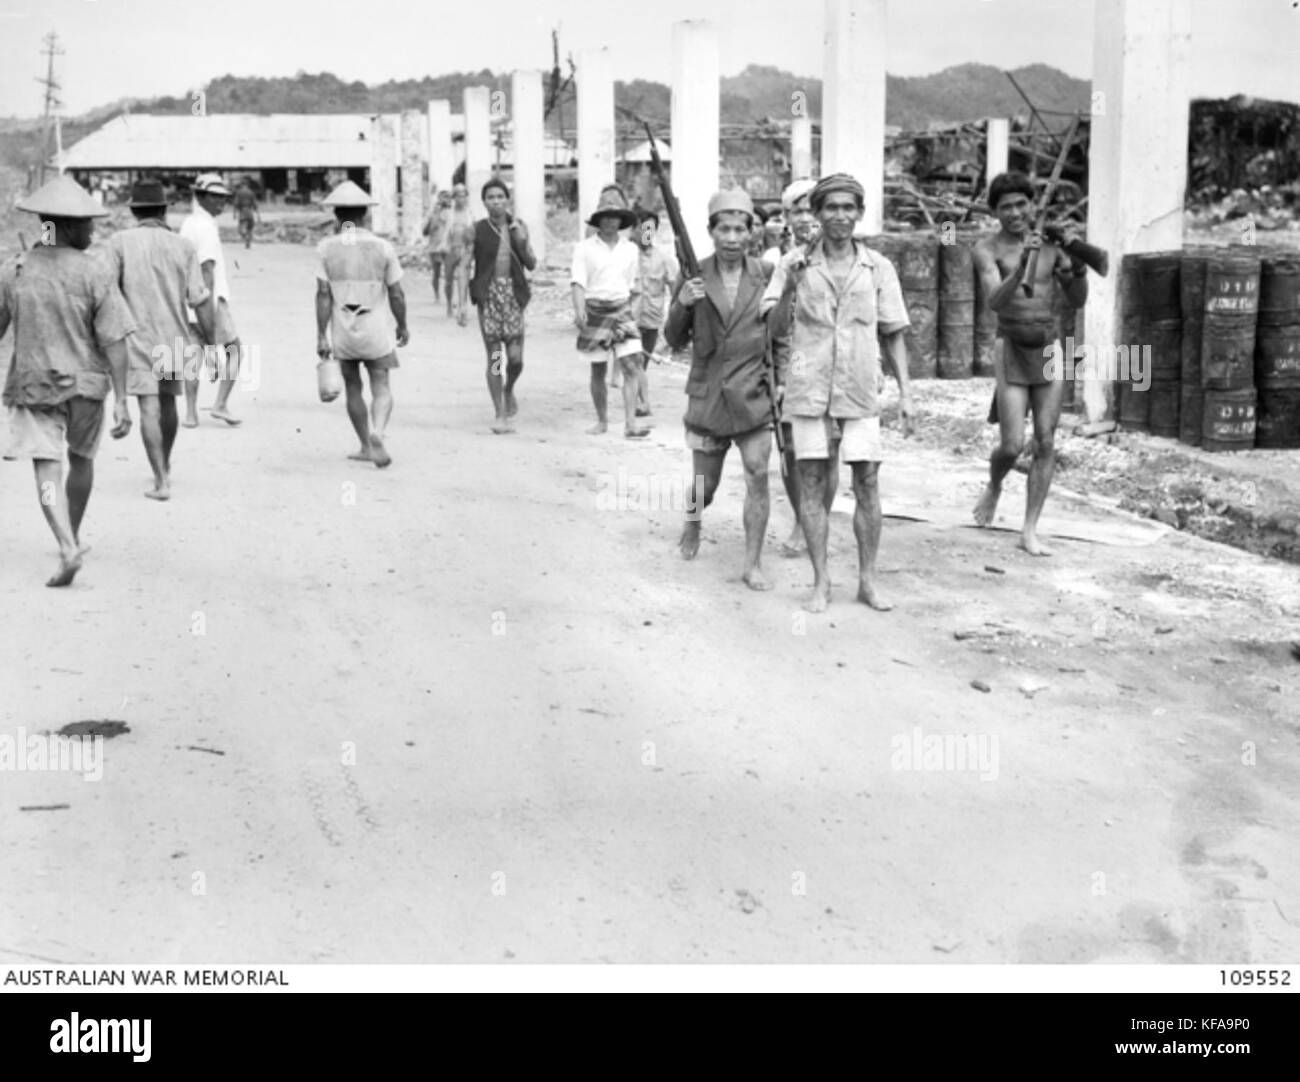 Indigenous peoples armed with Japanese rifles walking along a Brunei street - Stock Image